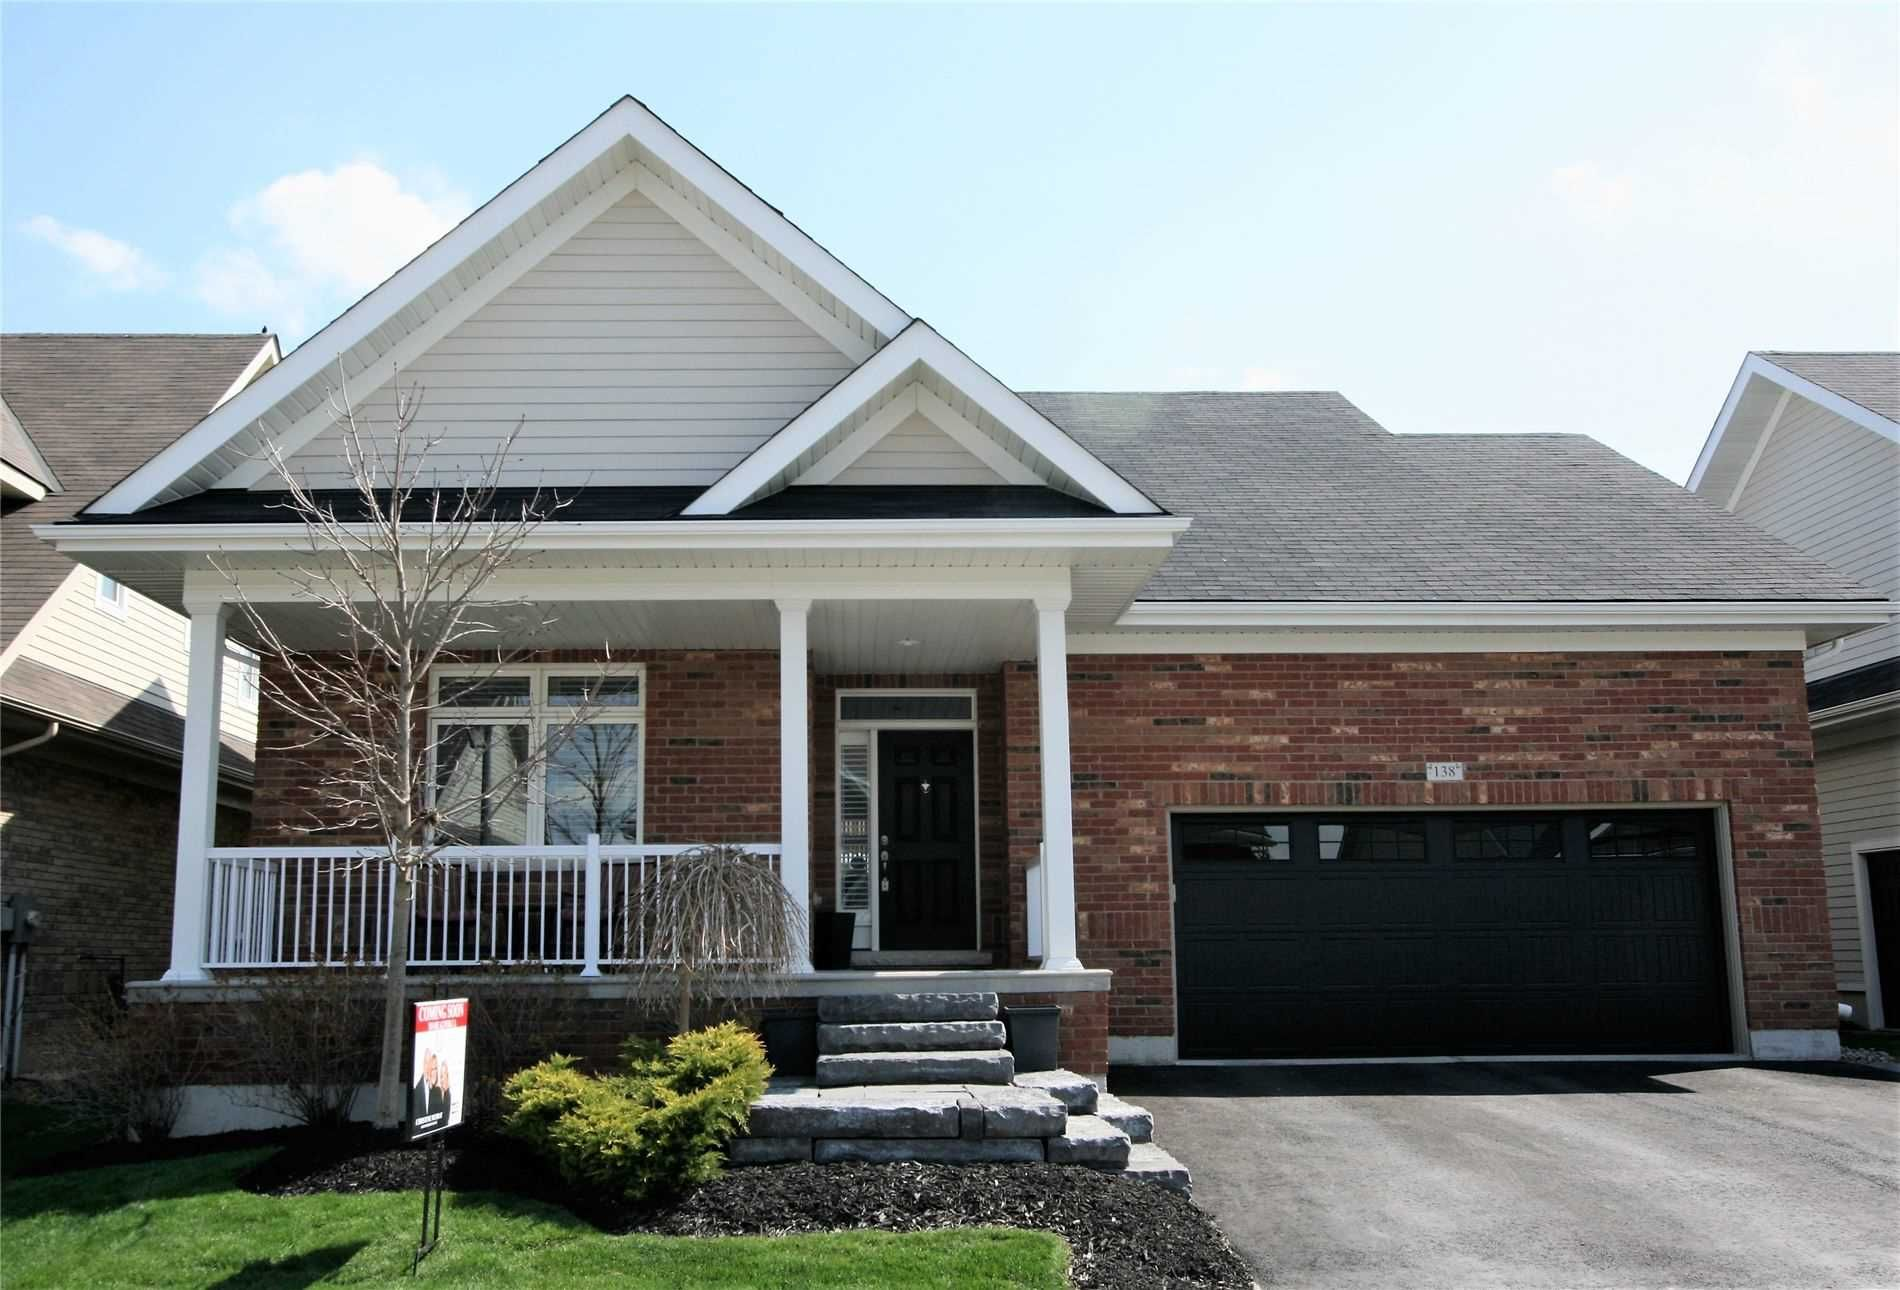 Main Photo: 138 200 Kingfisher Drive in Mono: Rural Mono House (Bungalow) for sale : MLS®# X5206259